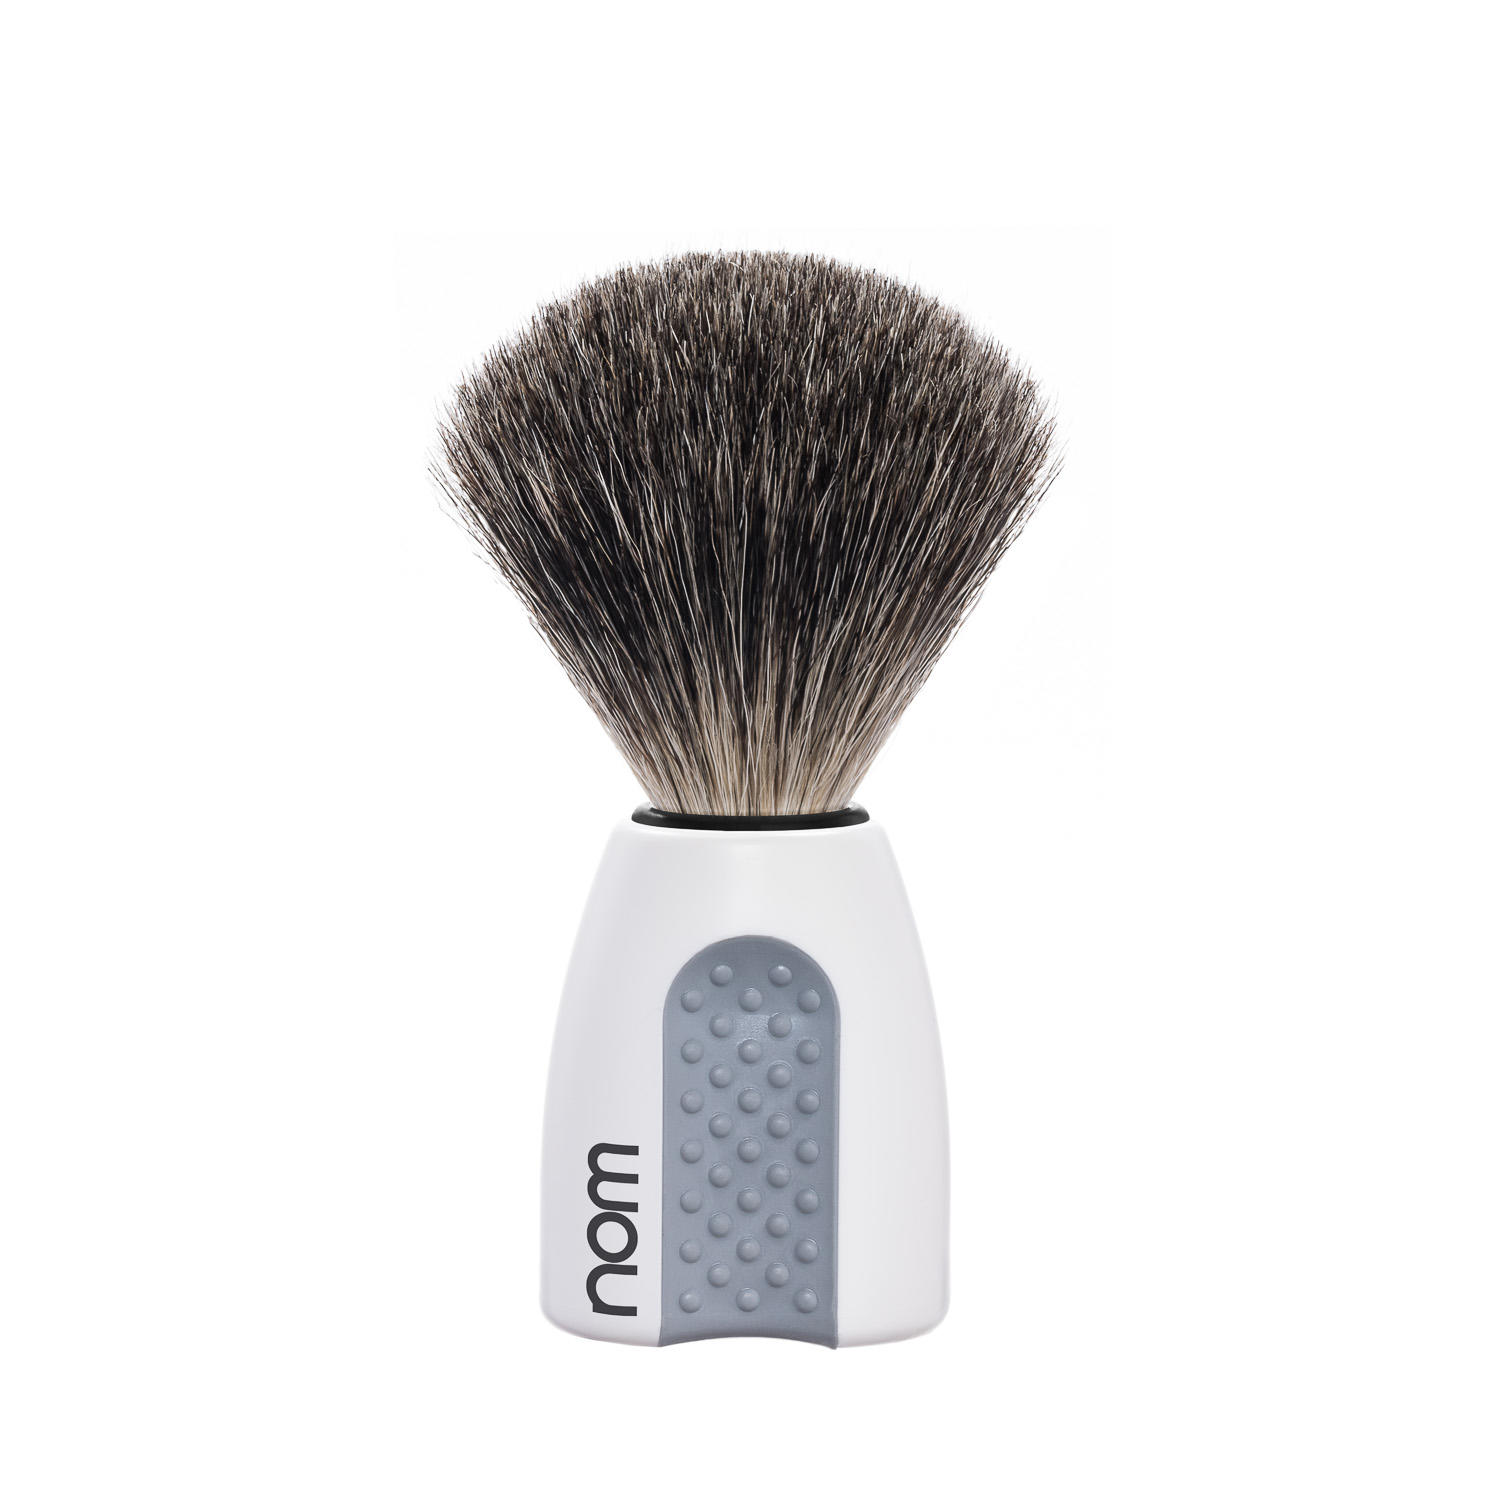 ERIK81WH NOM, ERIK white, pure badger shaving brush